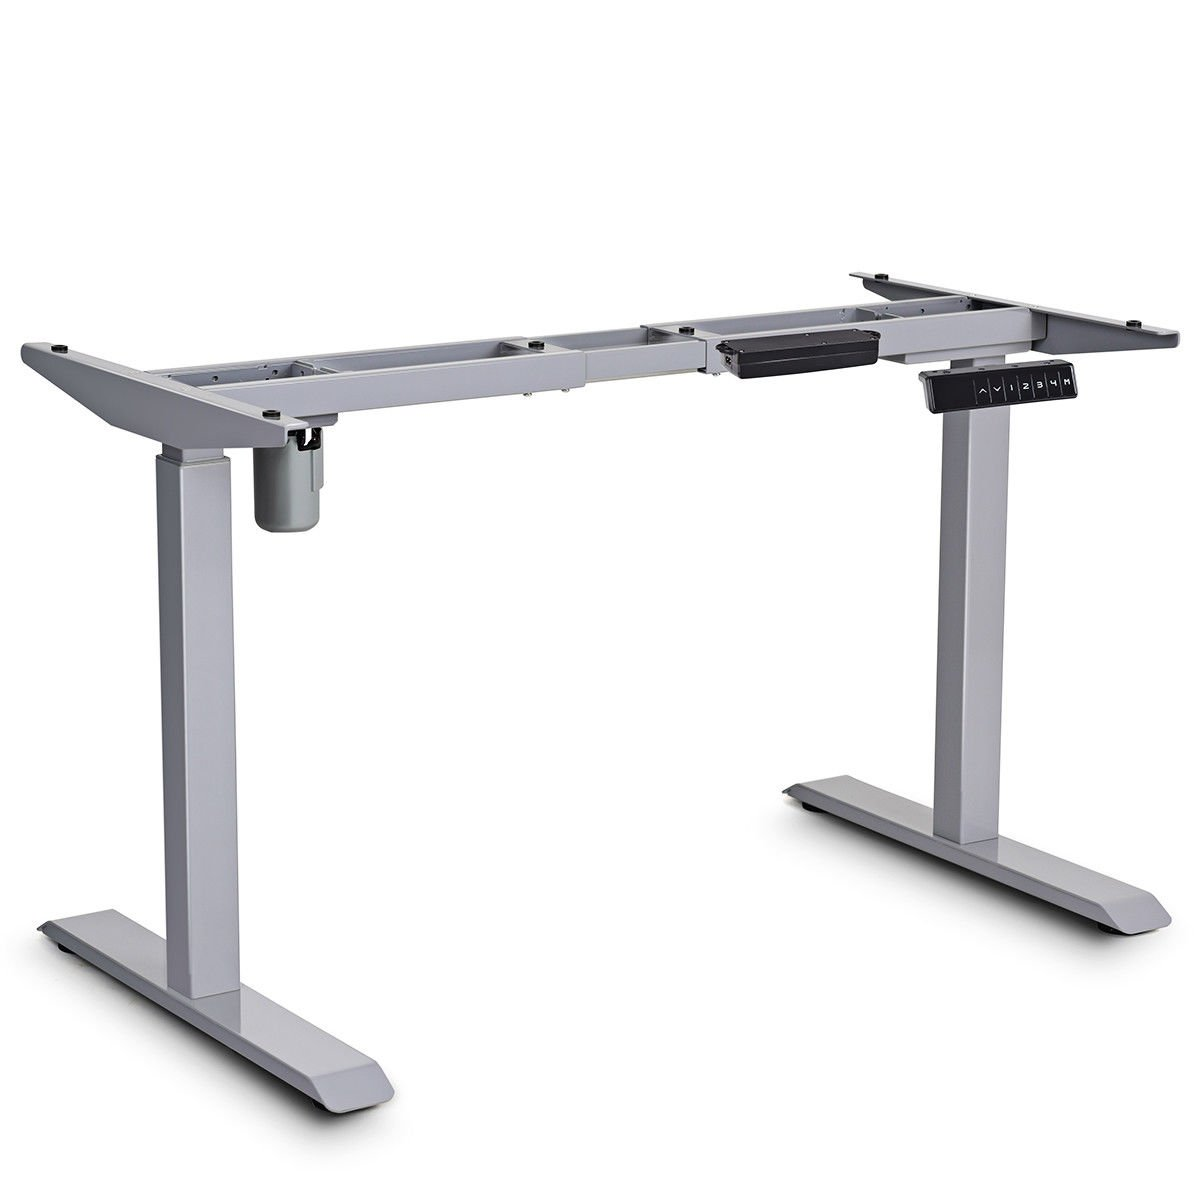 Tangkula Electric Standing Desk Frame, Motorized Table Fame Home Office Adjustable Height&Width Standing Desk Ergonomic Motorized Sit to Stand Desk with Memory Preset Handset Controller (Gray) by Tangkula